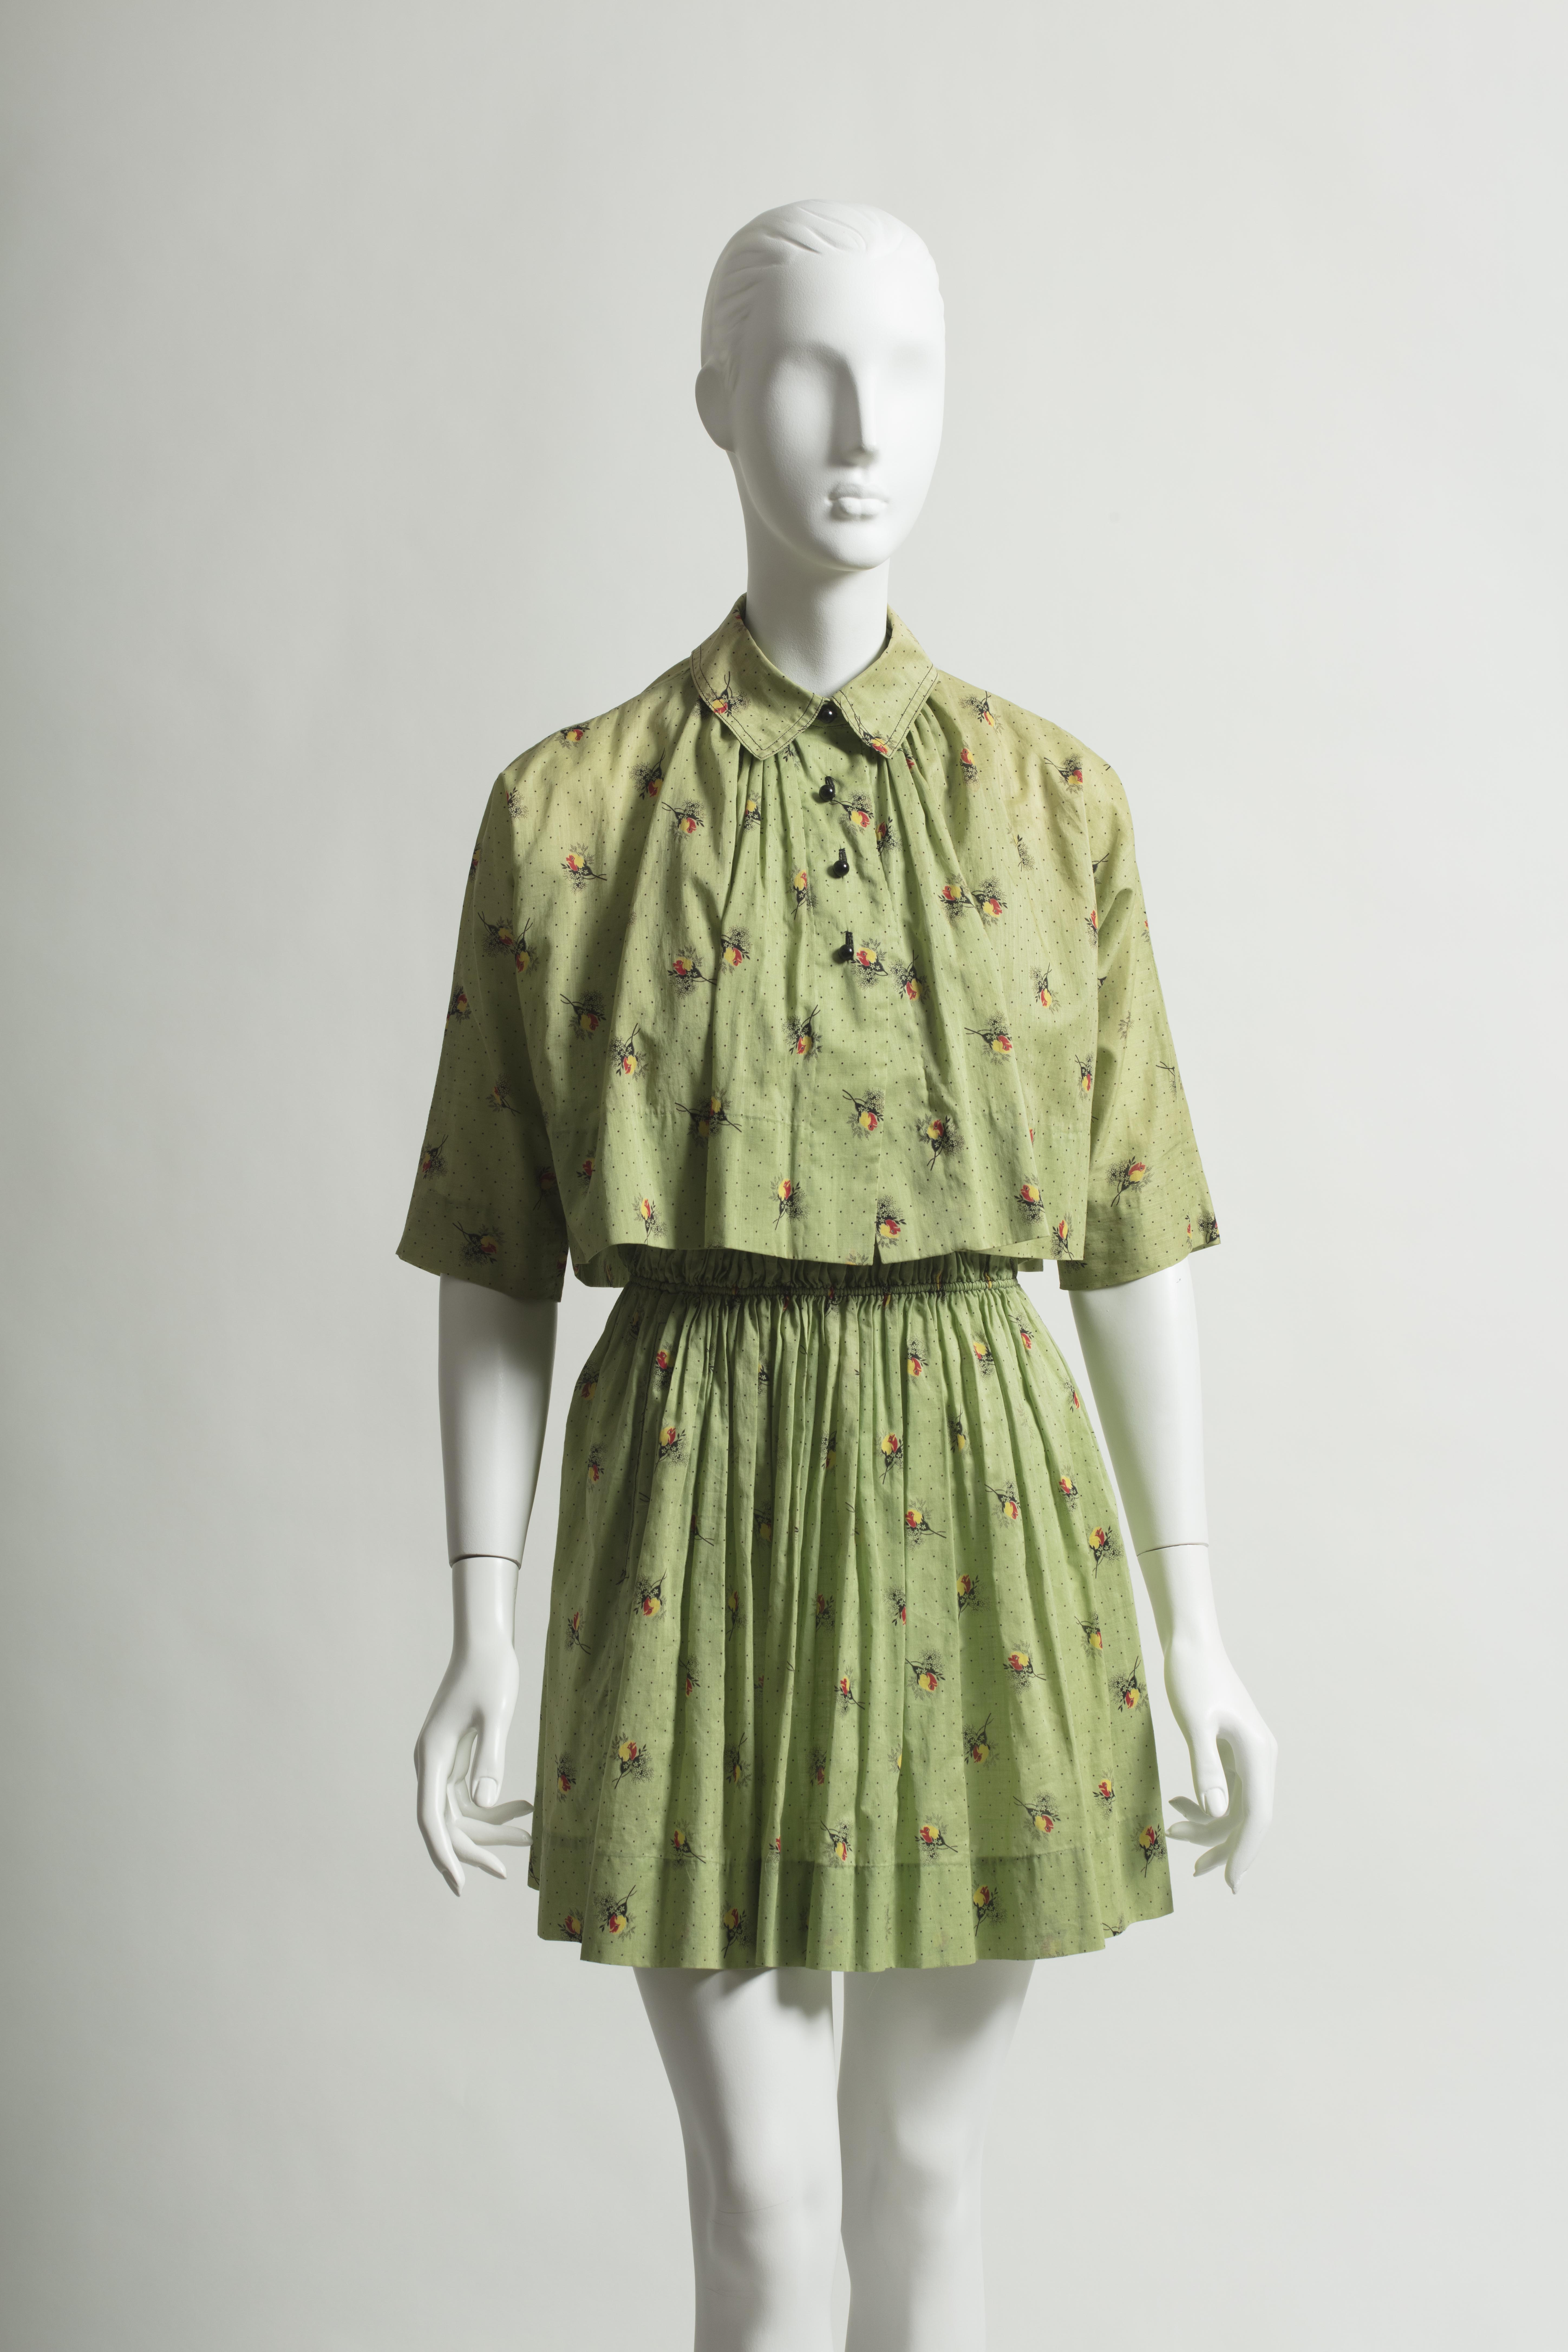 This 1940s Claire McCardell outfit will be on display in Sportswear to Athleisure: The Creation of Comfortable Clothing, an exhibition from the University of North Texas' Texas Fashion Collection running from Sept. 8 (Friday) to Dec. 8 (Friday) at UNT ArtSpace Dallas.